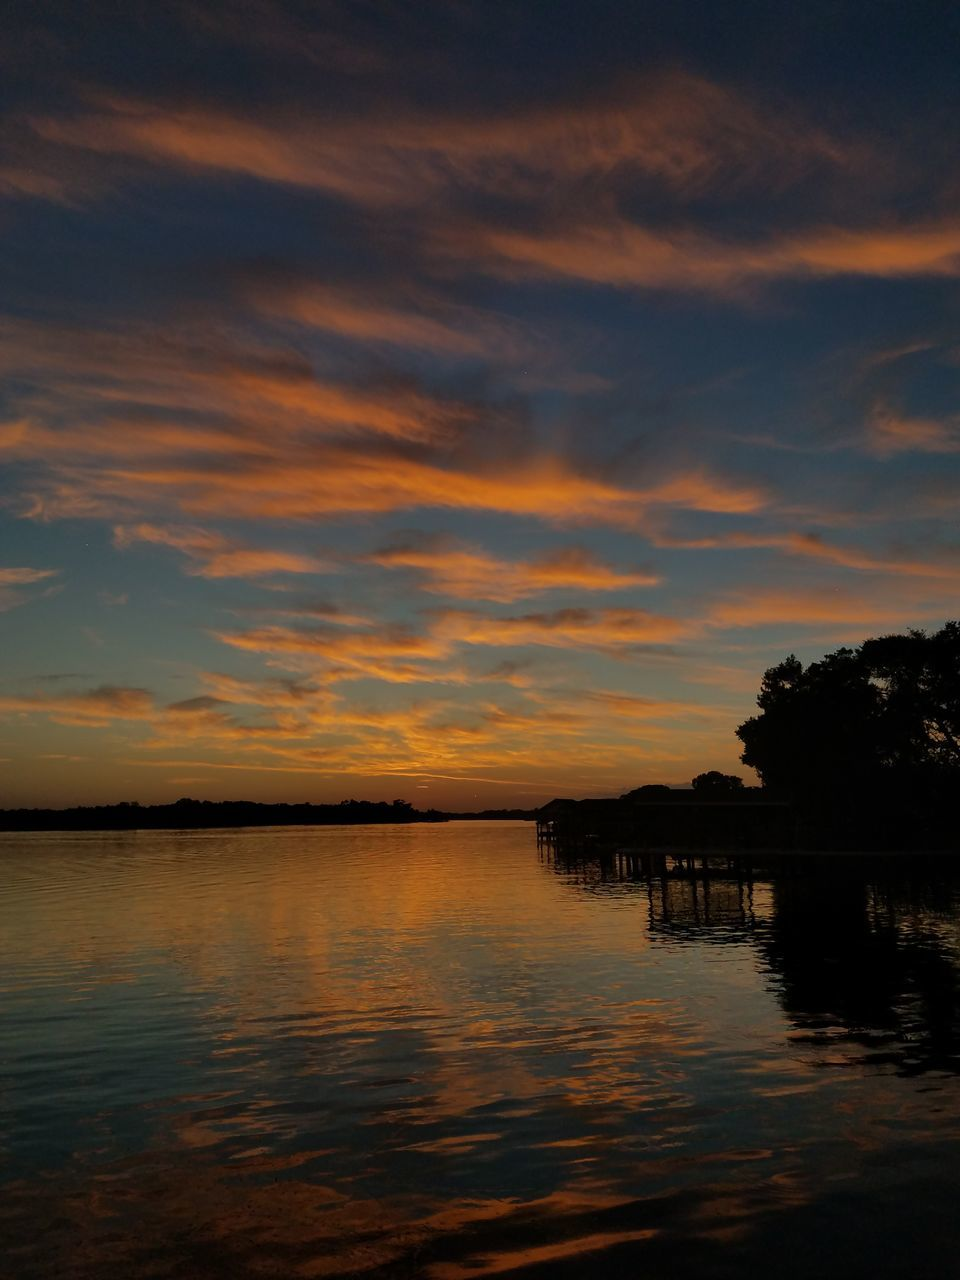 sunset, silhouette, water, nature, sky, beauty in nature, scenics, tranquility, tranquil scene, reflection, lake, outdoors, no people, tree, cloud - sky